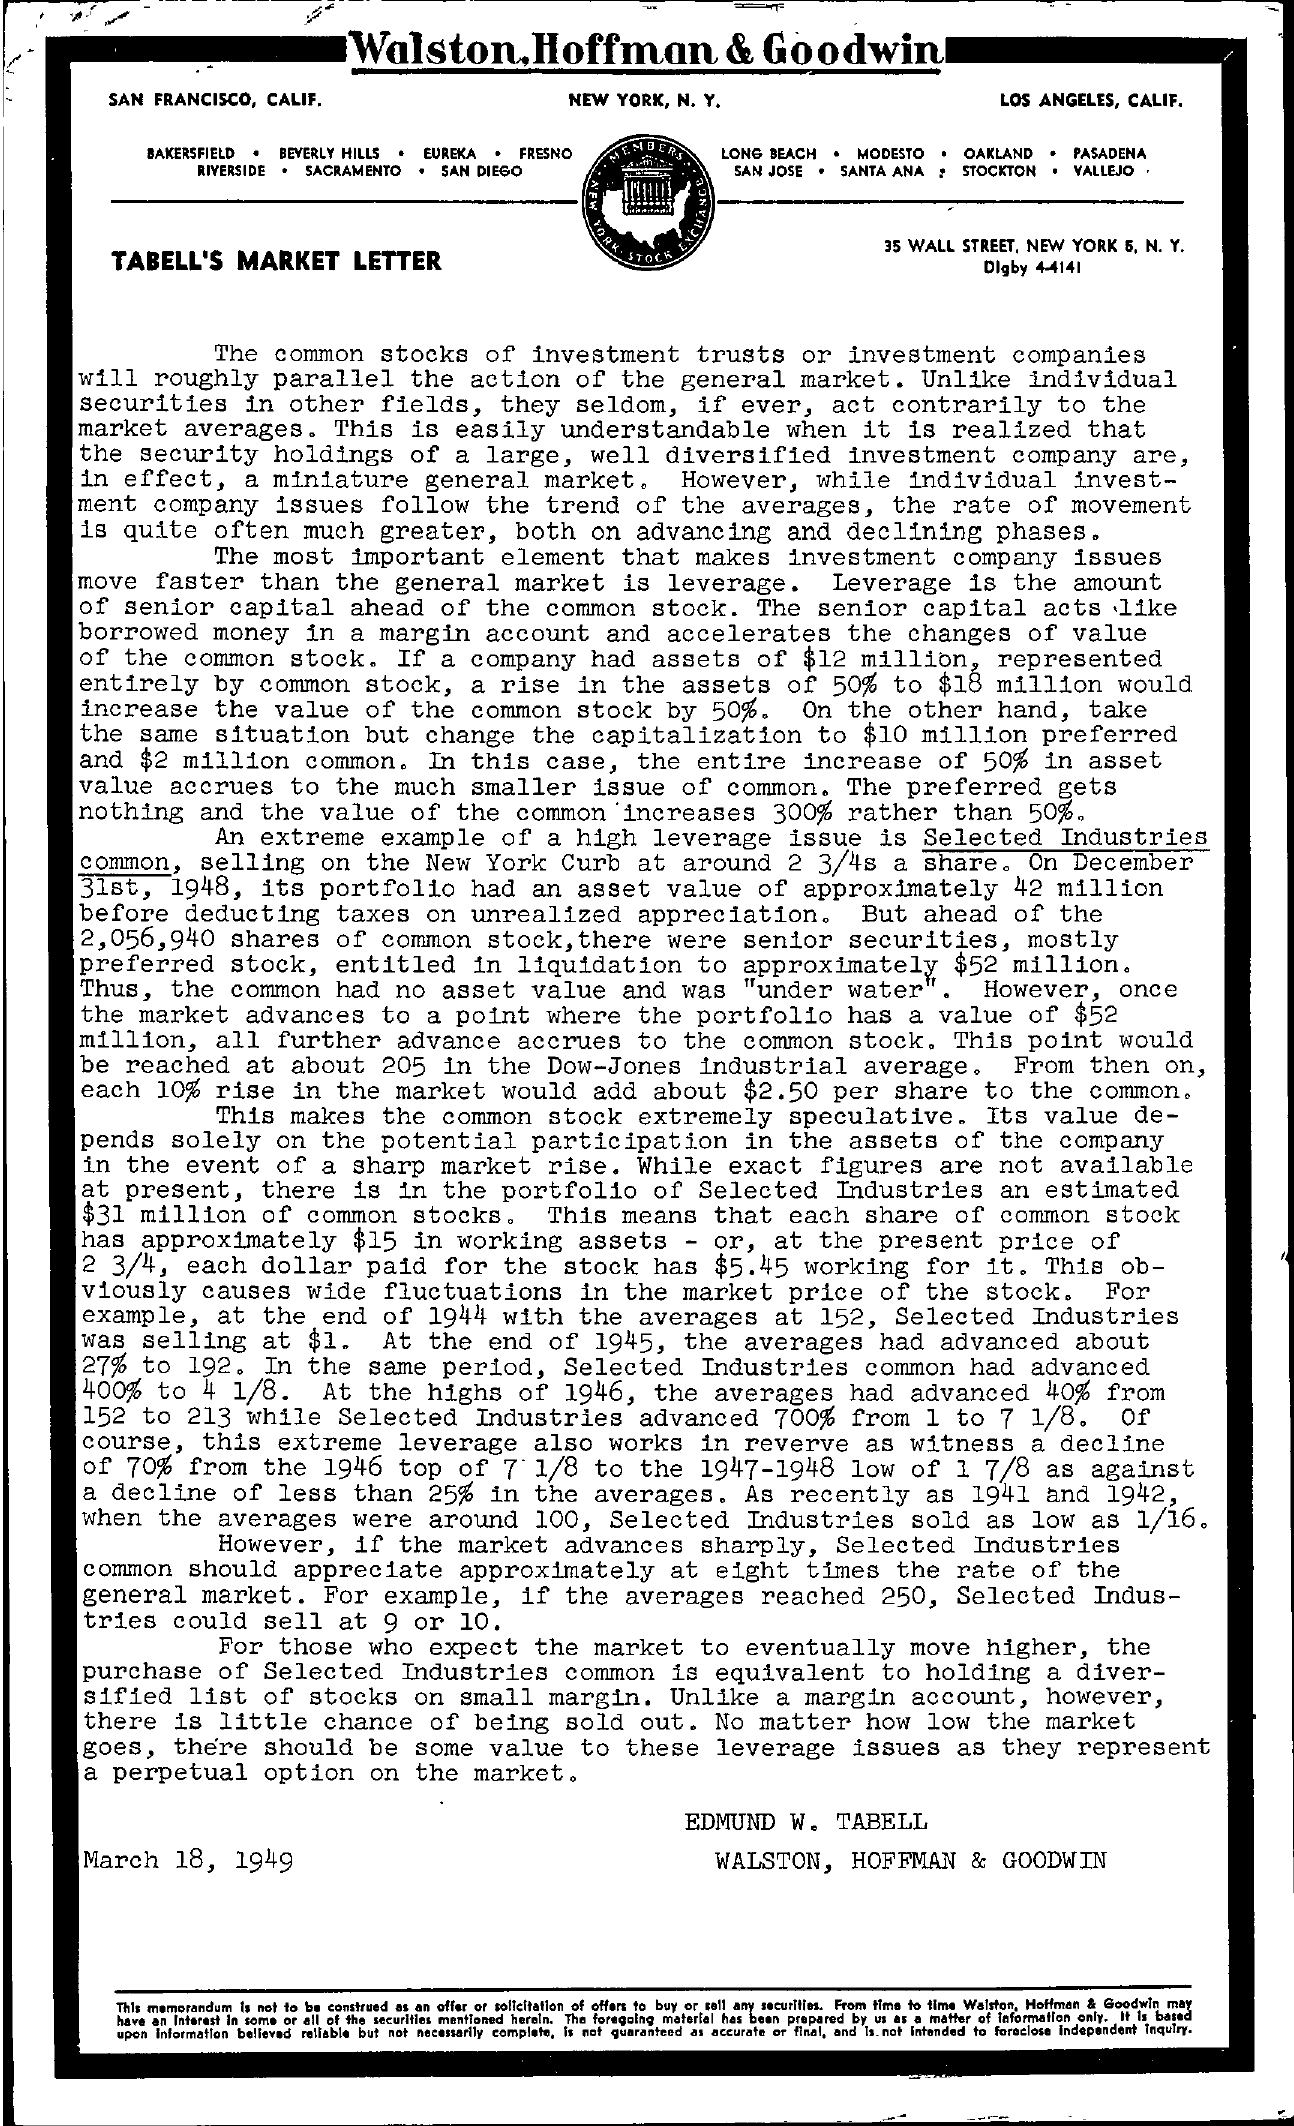 Tabell's Market Letter - March 18, 1949